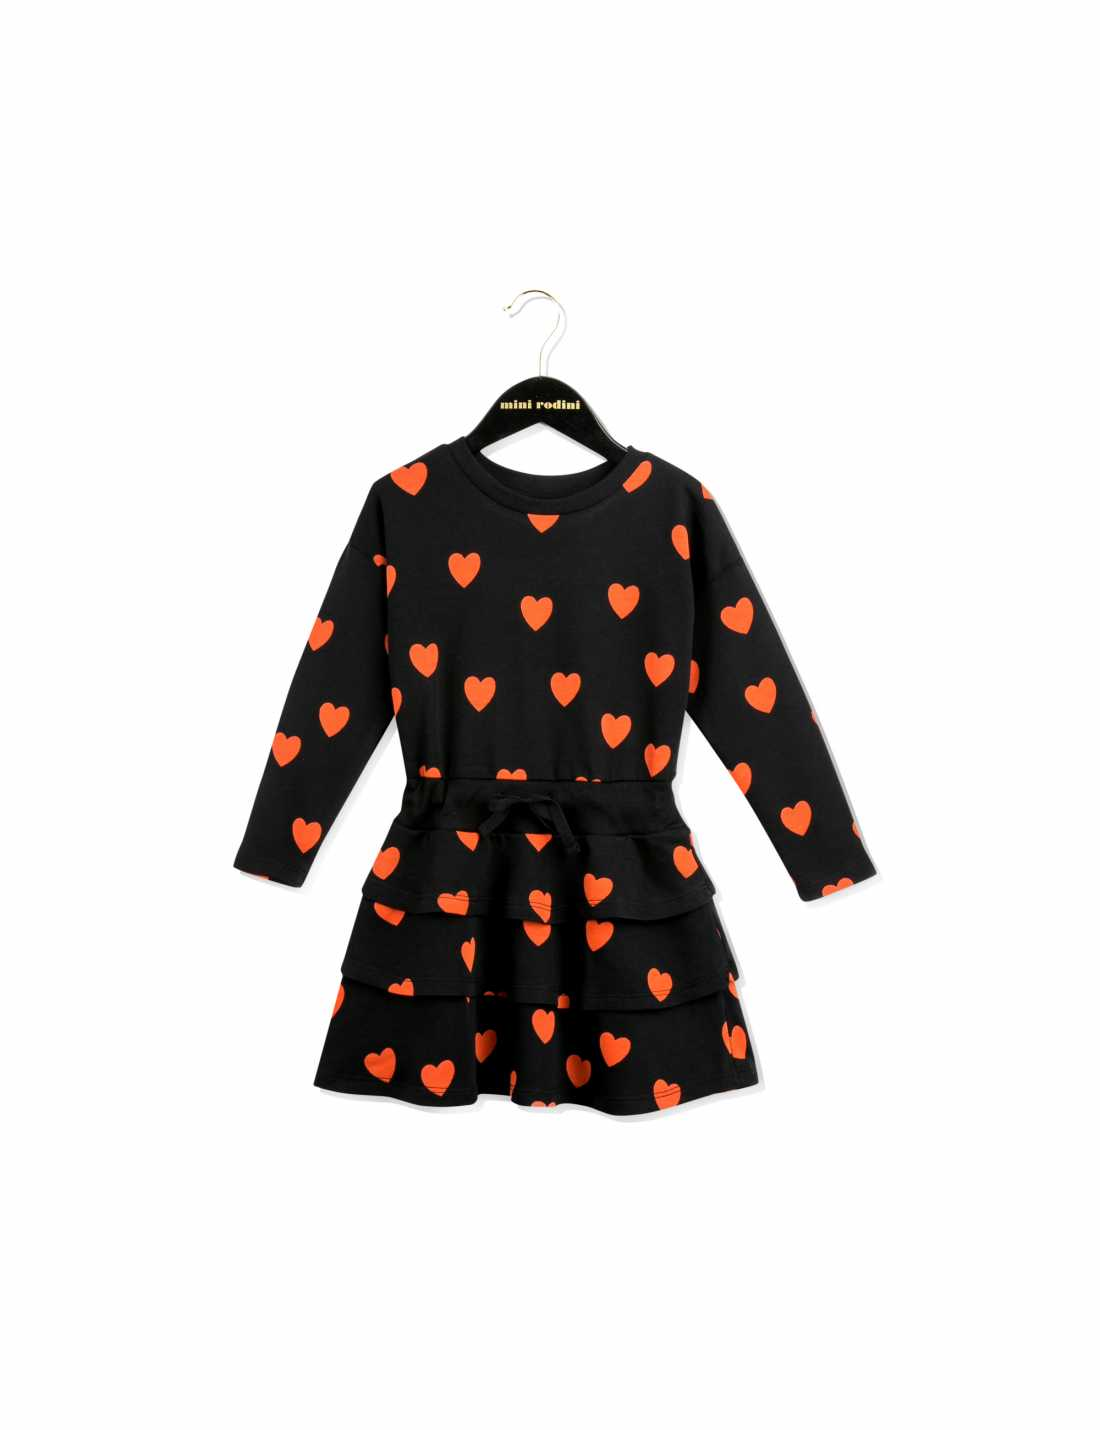 Black long sleeve frill dress with red hearts printed all over